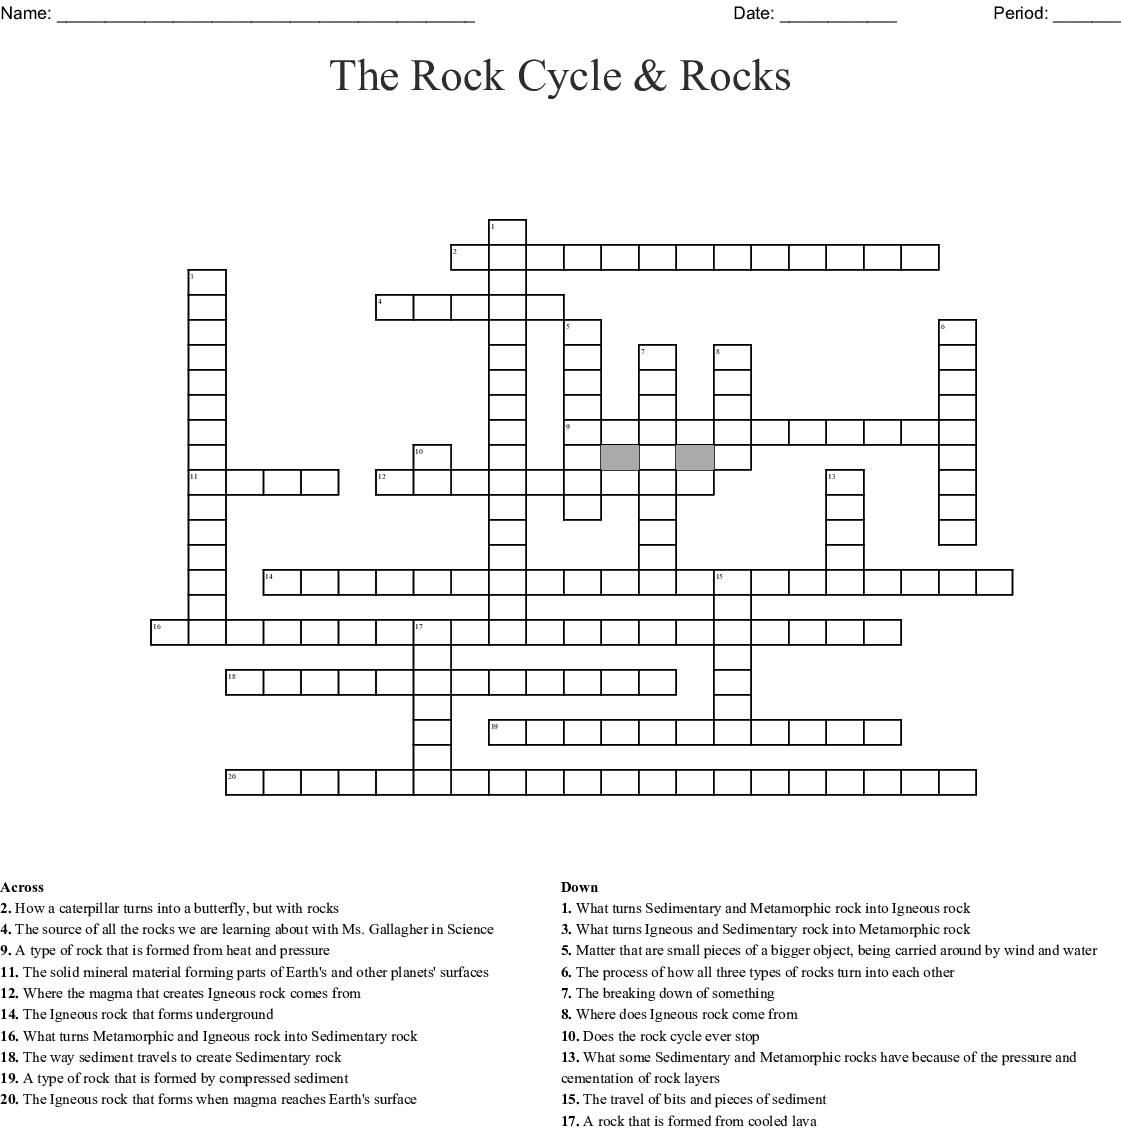 THE ROCK CYCLE Word Search - WordMint